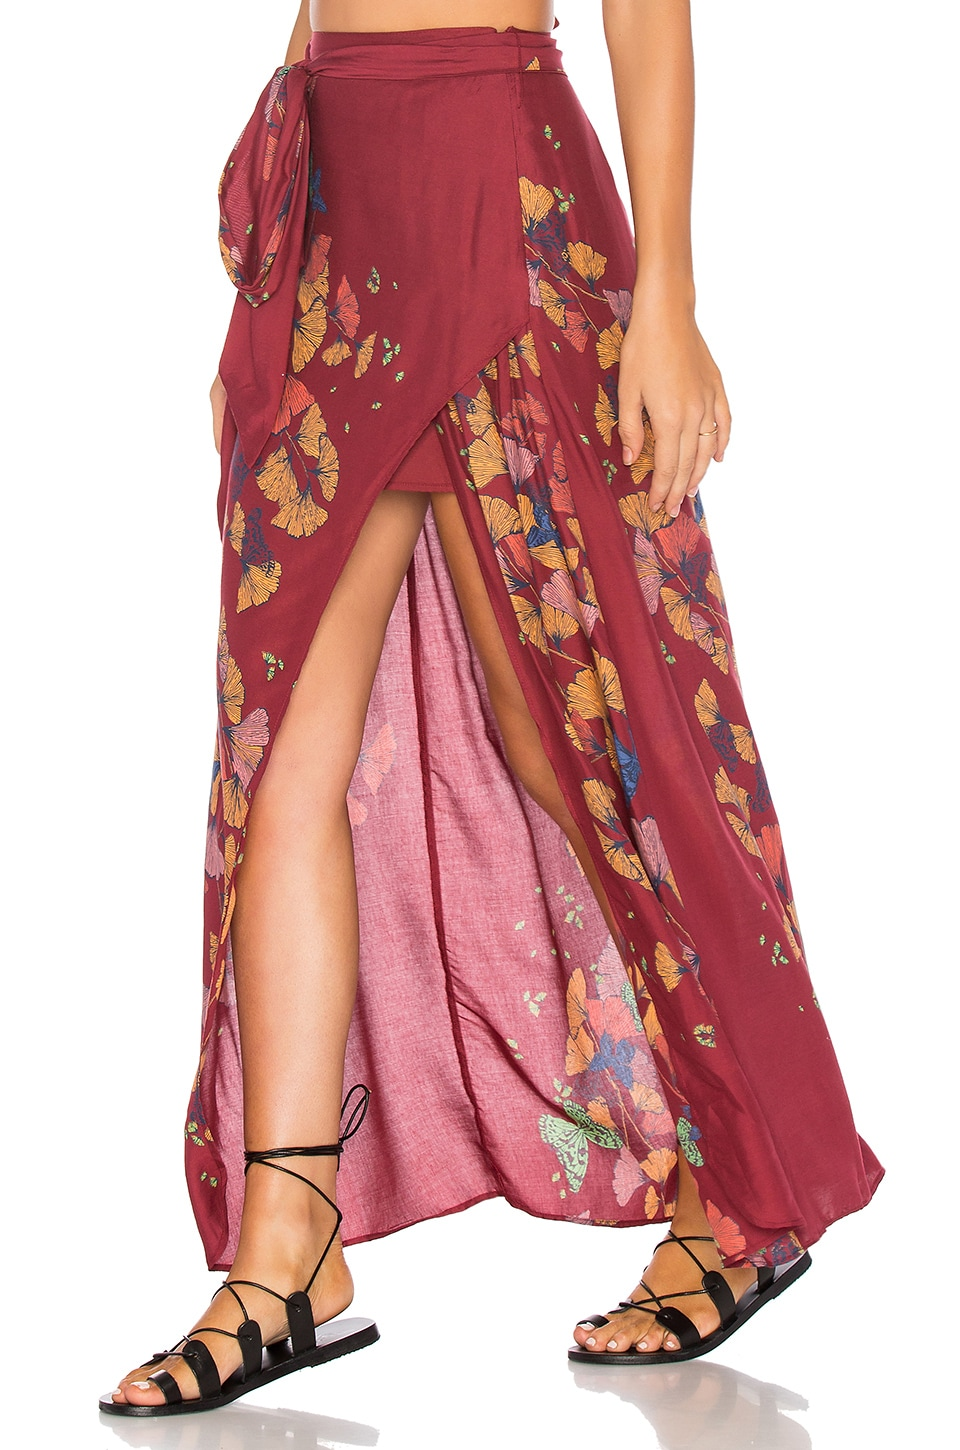 Free People Bri Bri Butterfly Maxi Skirt in Red Combo